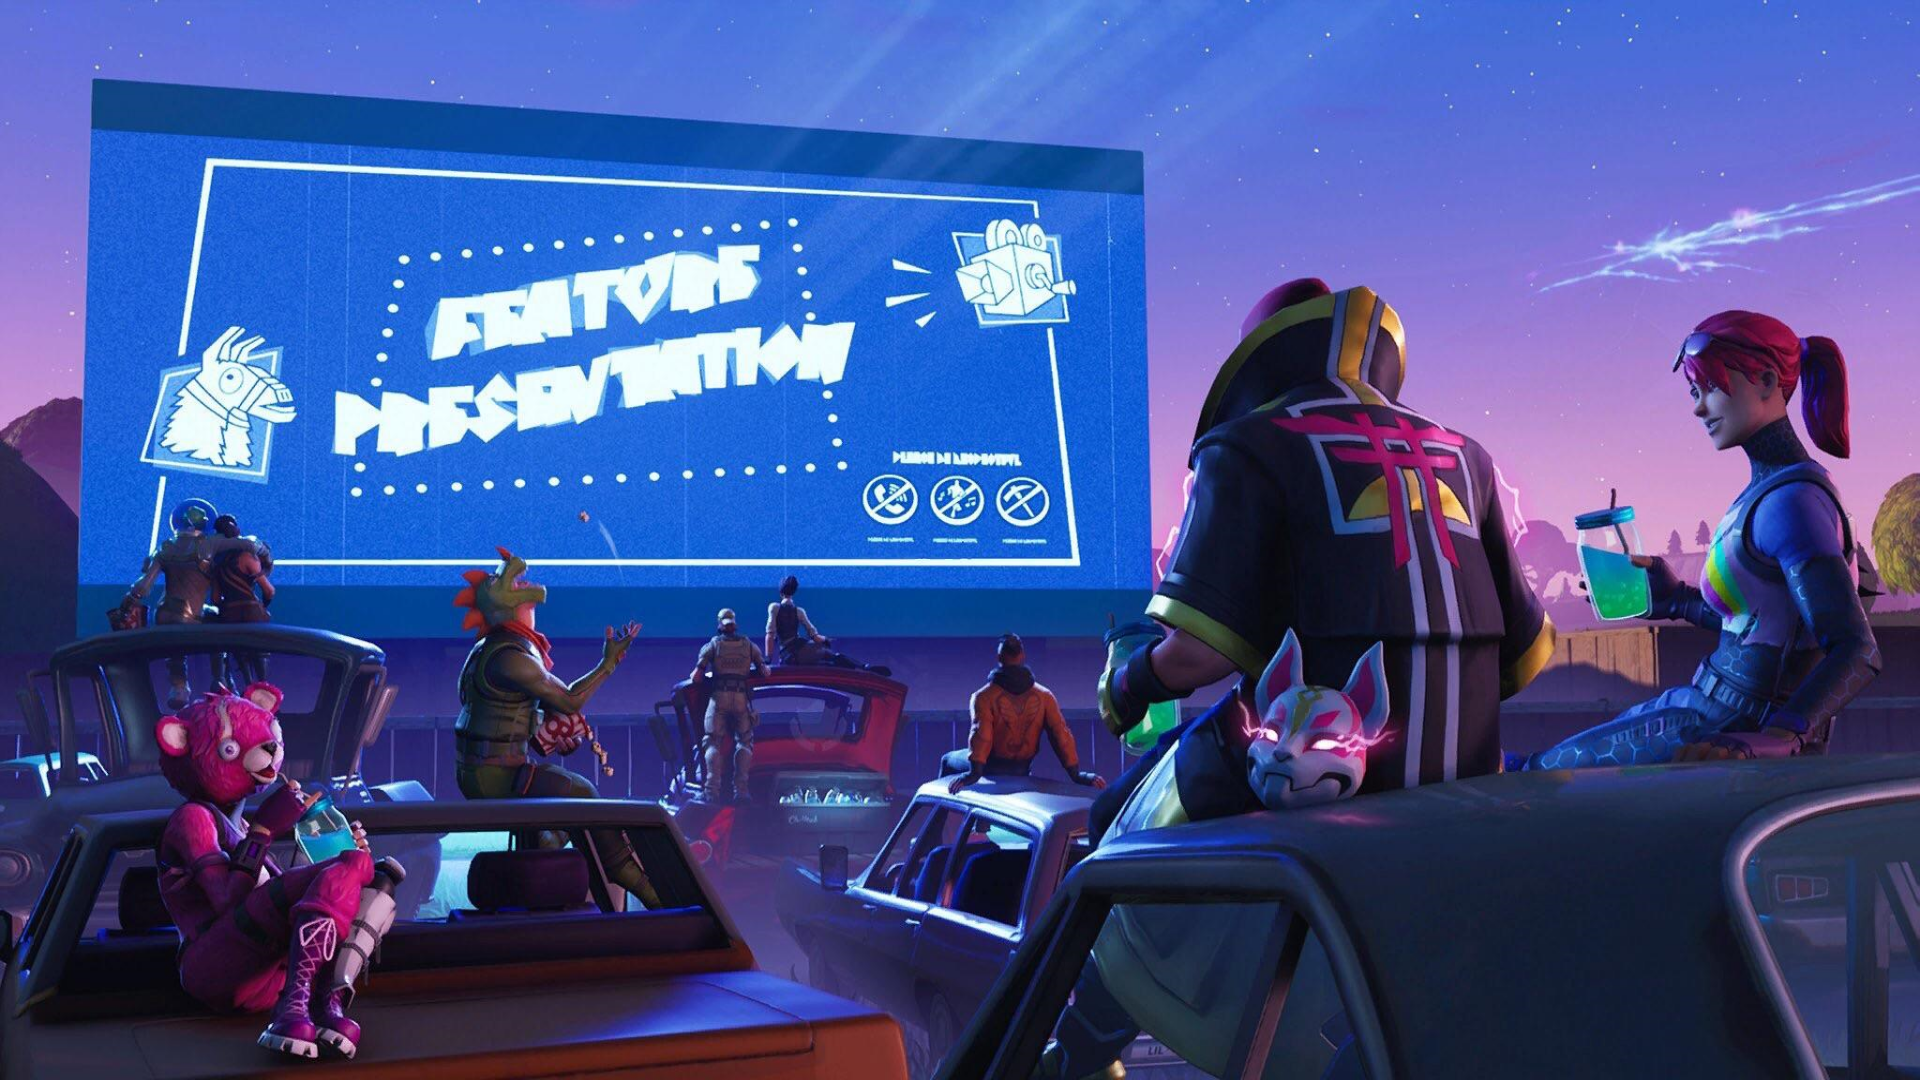 Fortnite Hd Wallpaper Background Image 1920x1080 Id 940666 Wallpaper Abyss